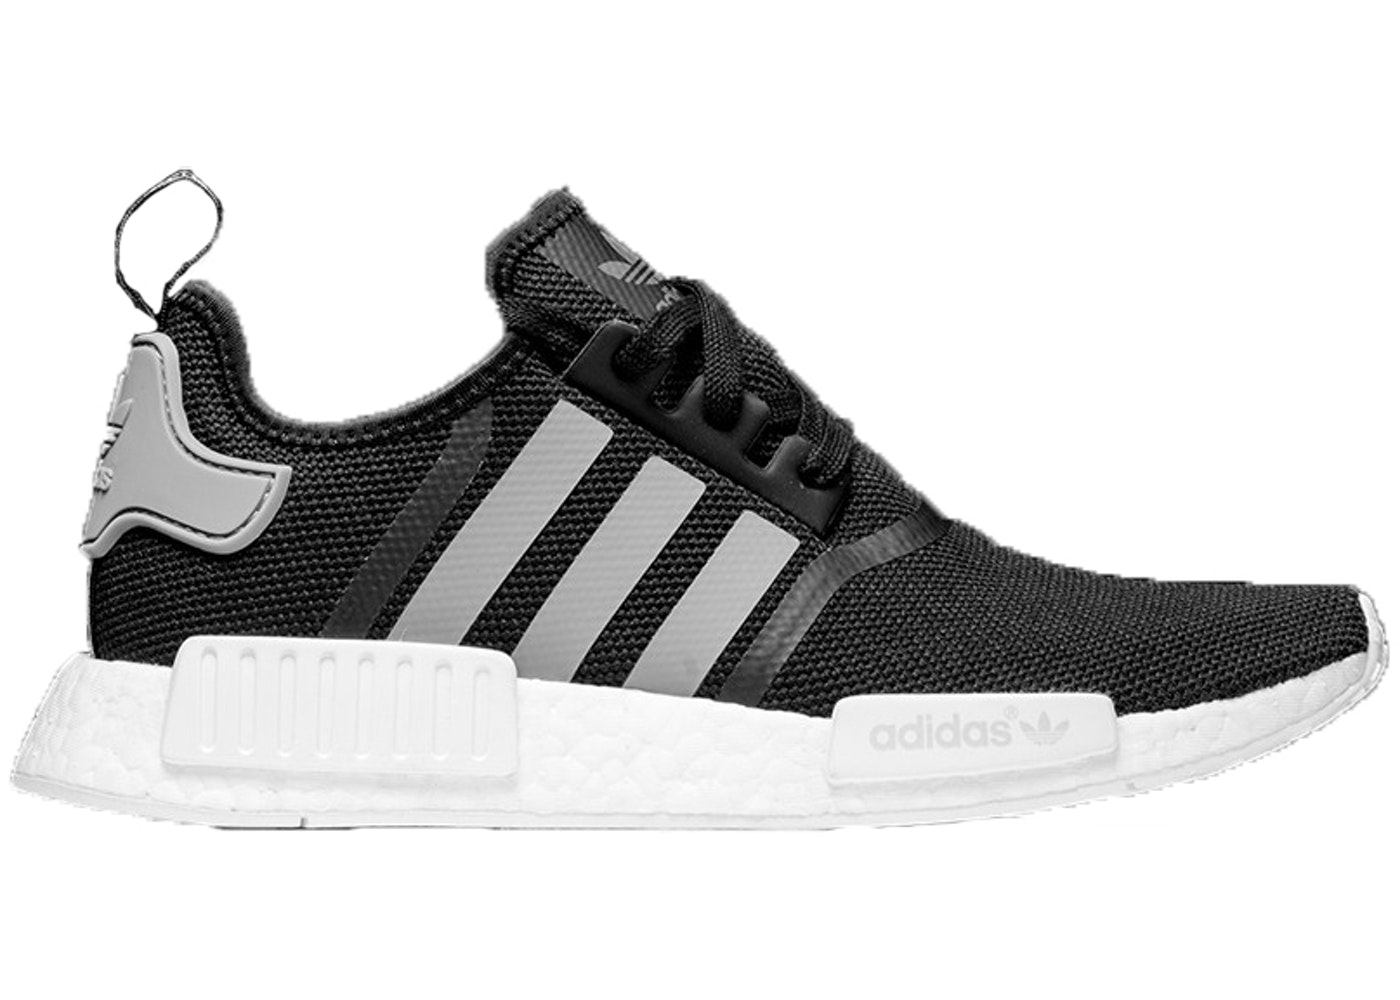 Fifty Shades Of Grey Feature On This adidas Originals NMD R1